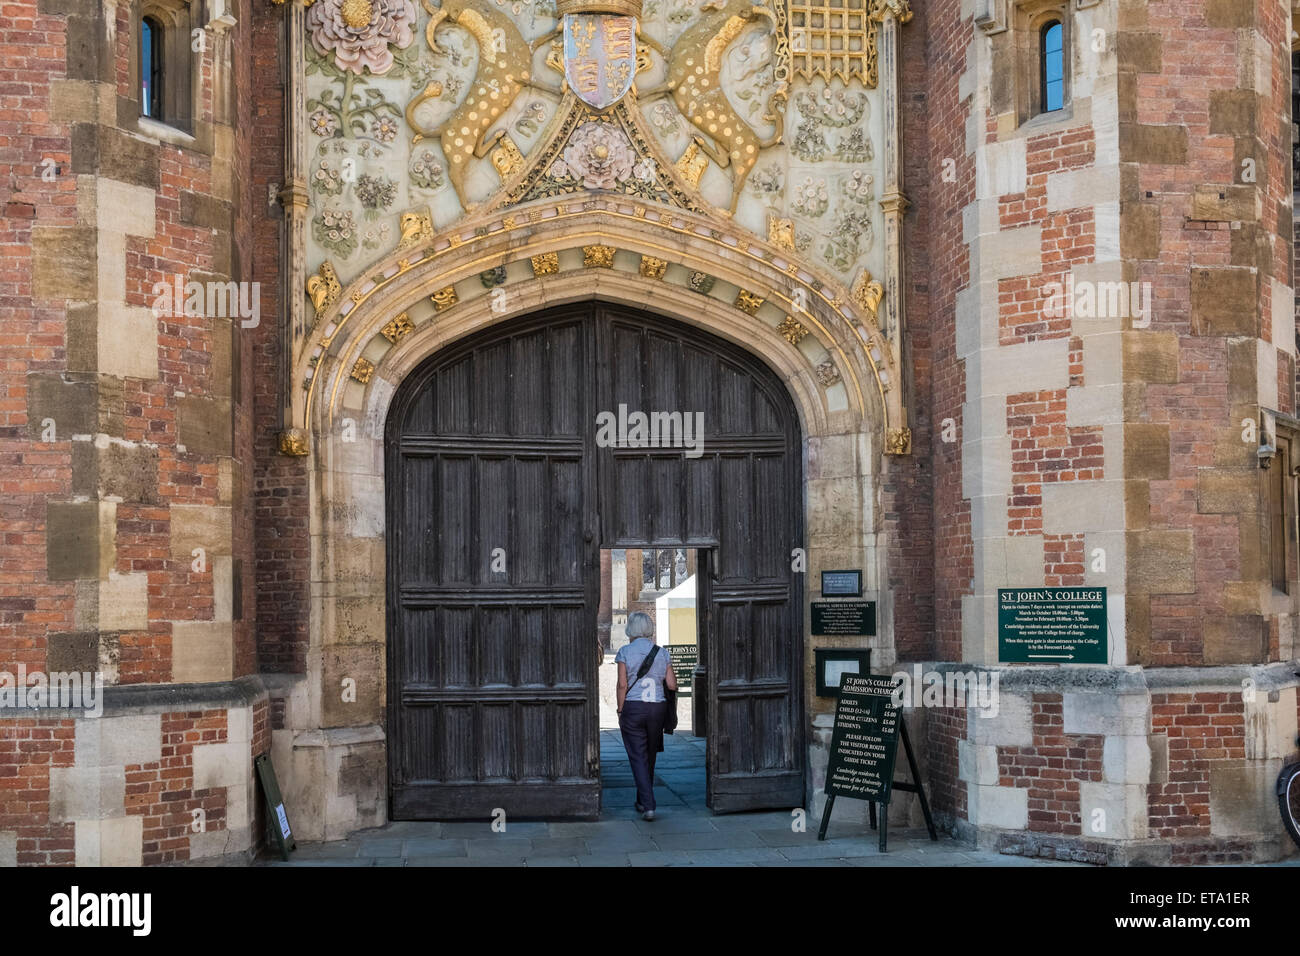 Entrance for St Johns College, Cambridge University, Stock Photo